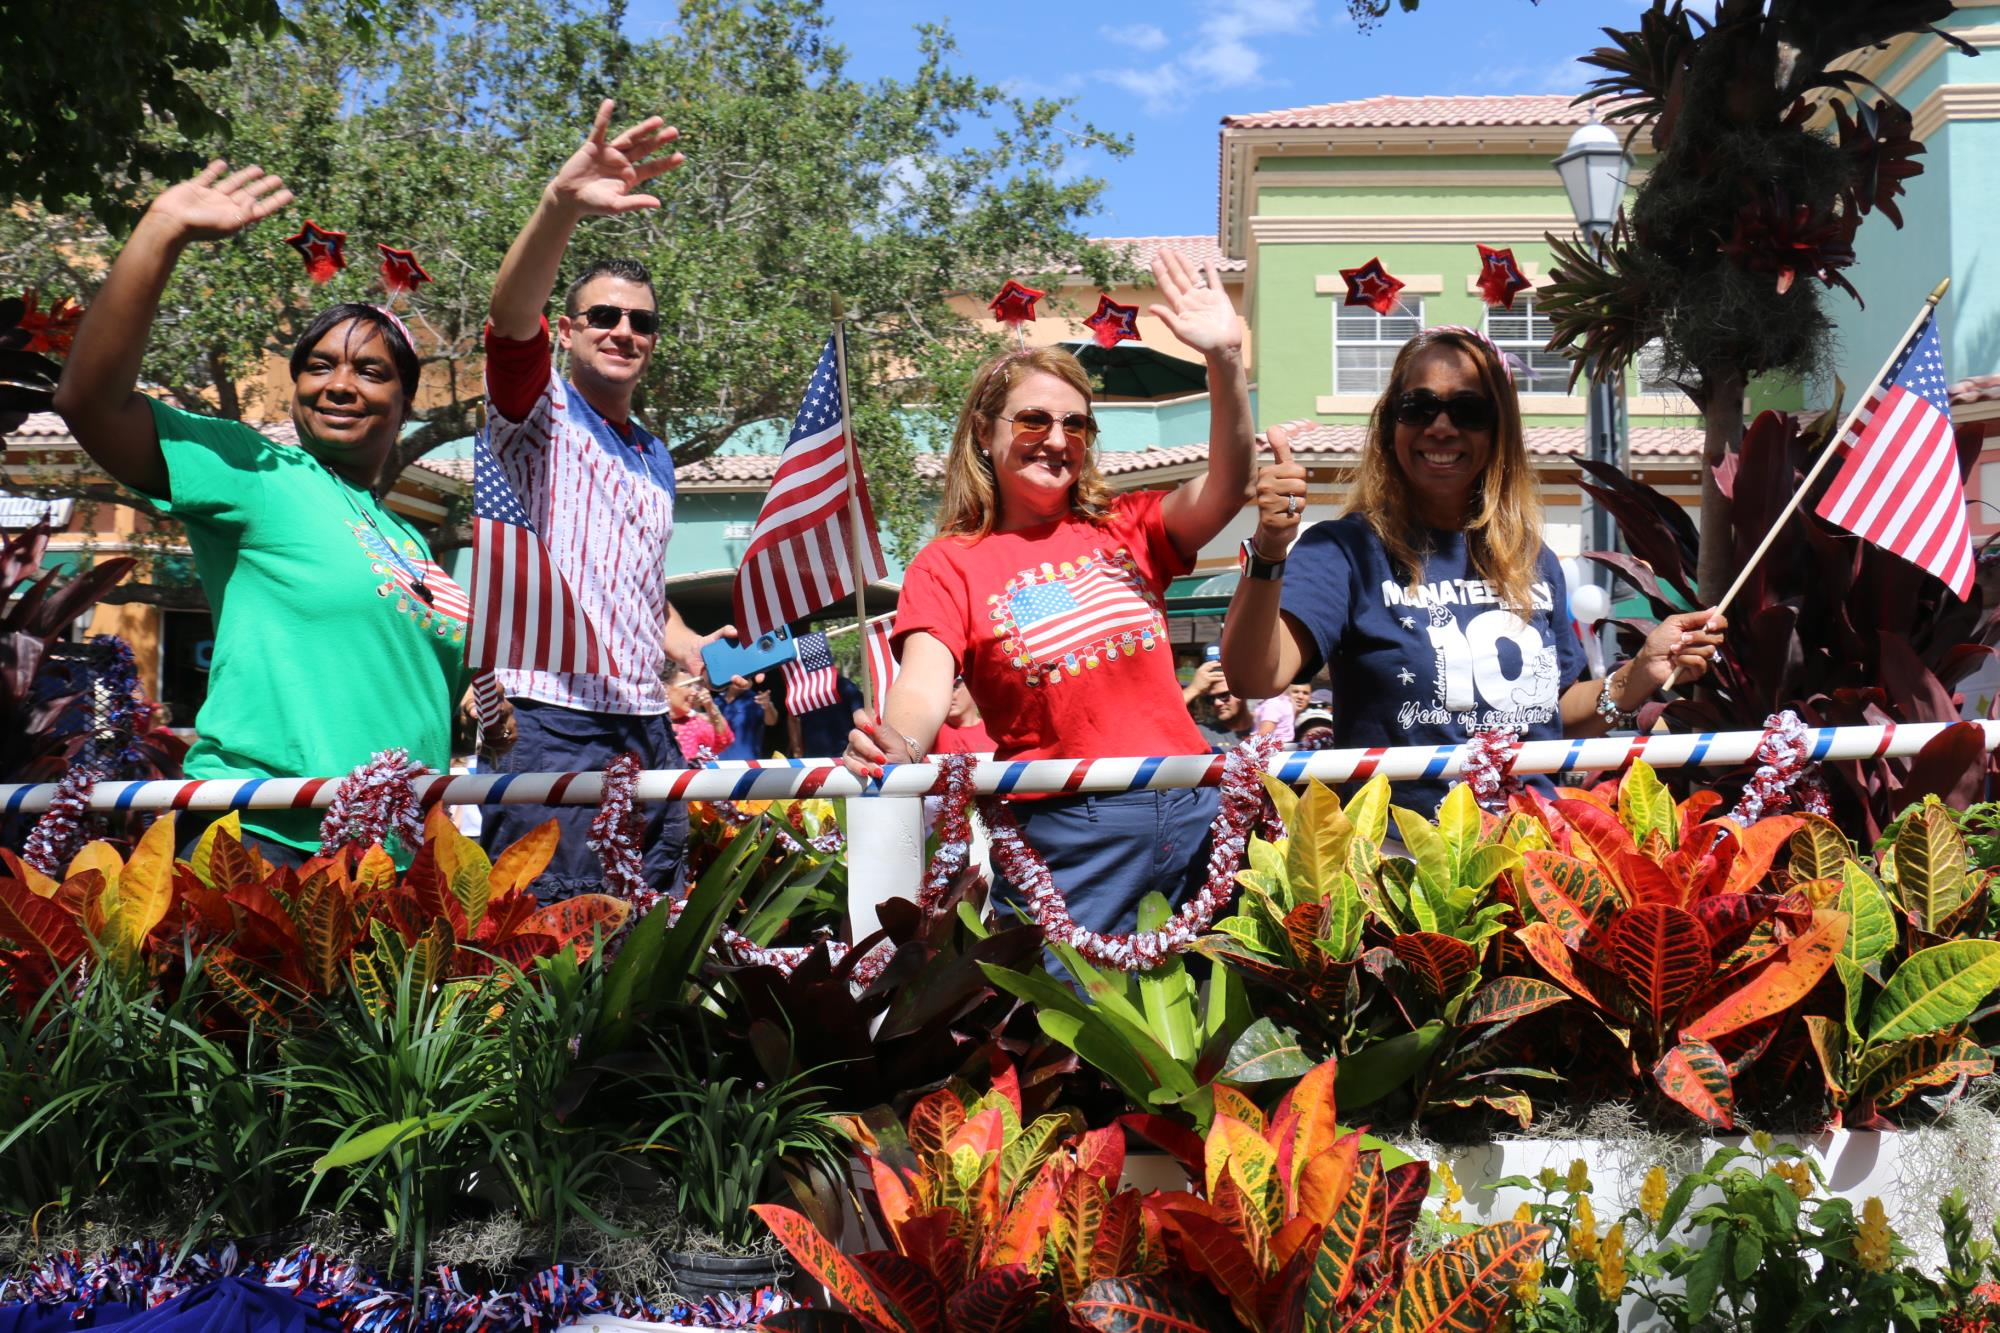 Weston's Annual July 4th Hometown Celebration Parade